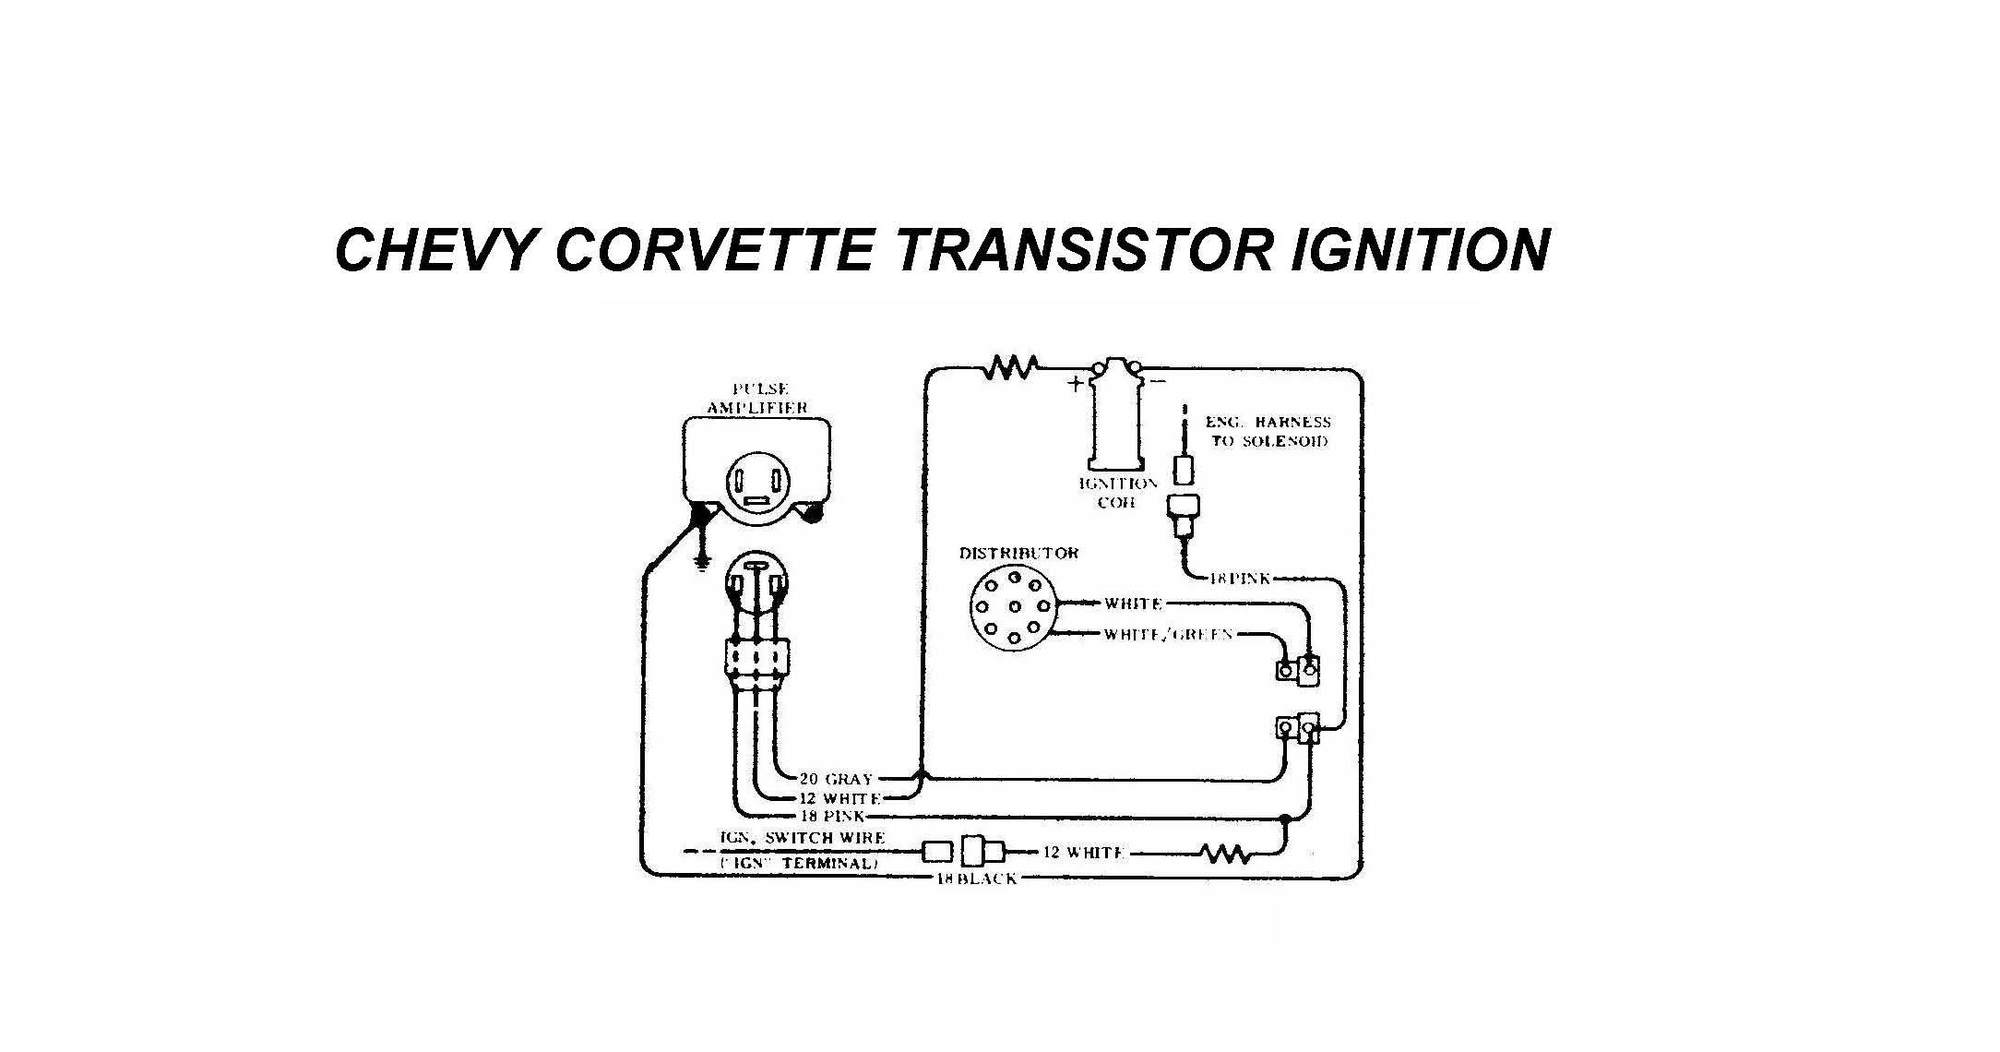 Ti Ignition Problems Page 2 Corvetteforum Chevrolet Corvette 12 Volt Solenoid Wiring Diagram For C3 If You Look Close At The Gm Can See Resistor Built Into Harness